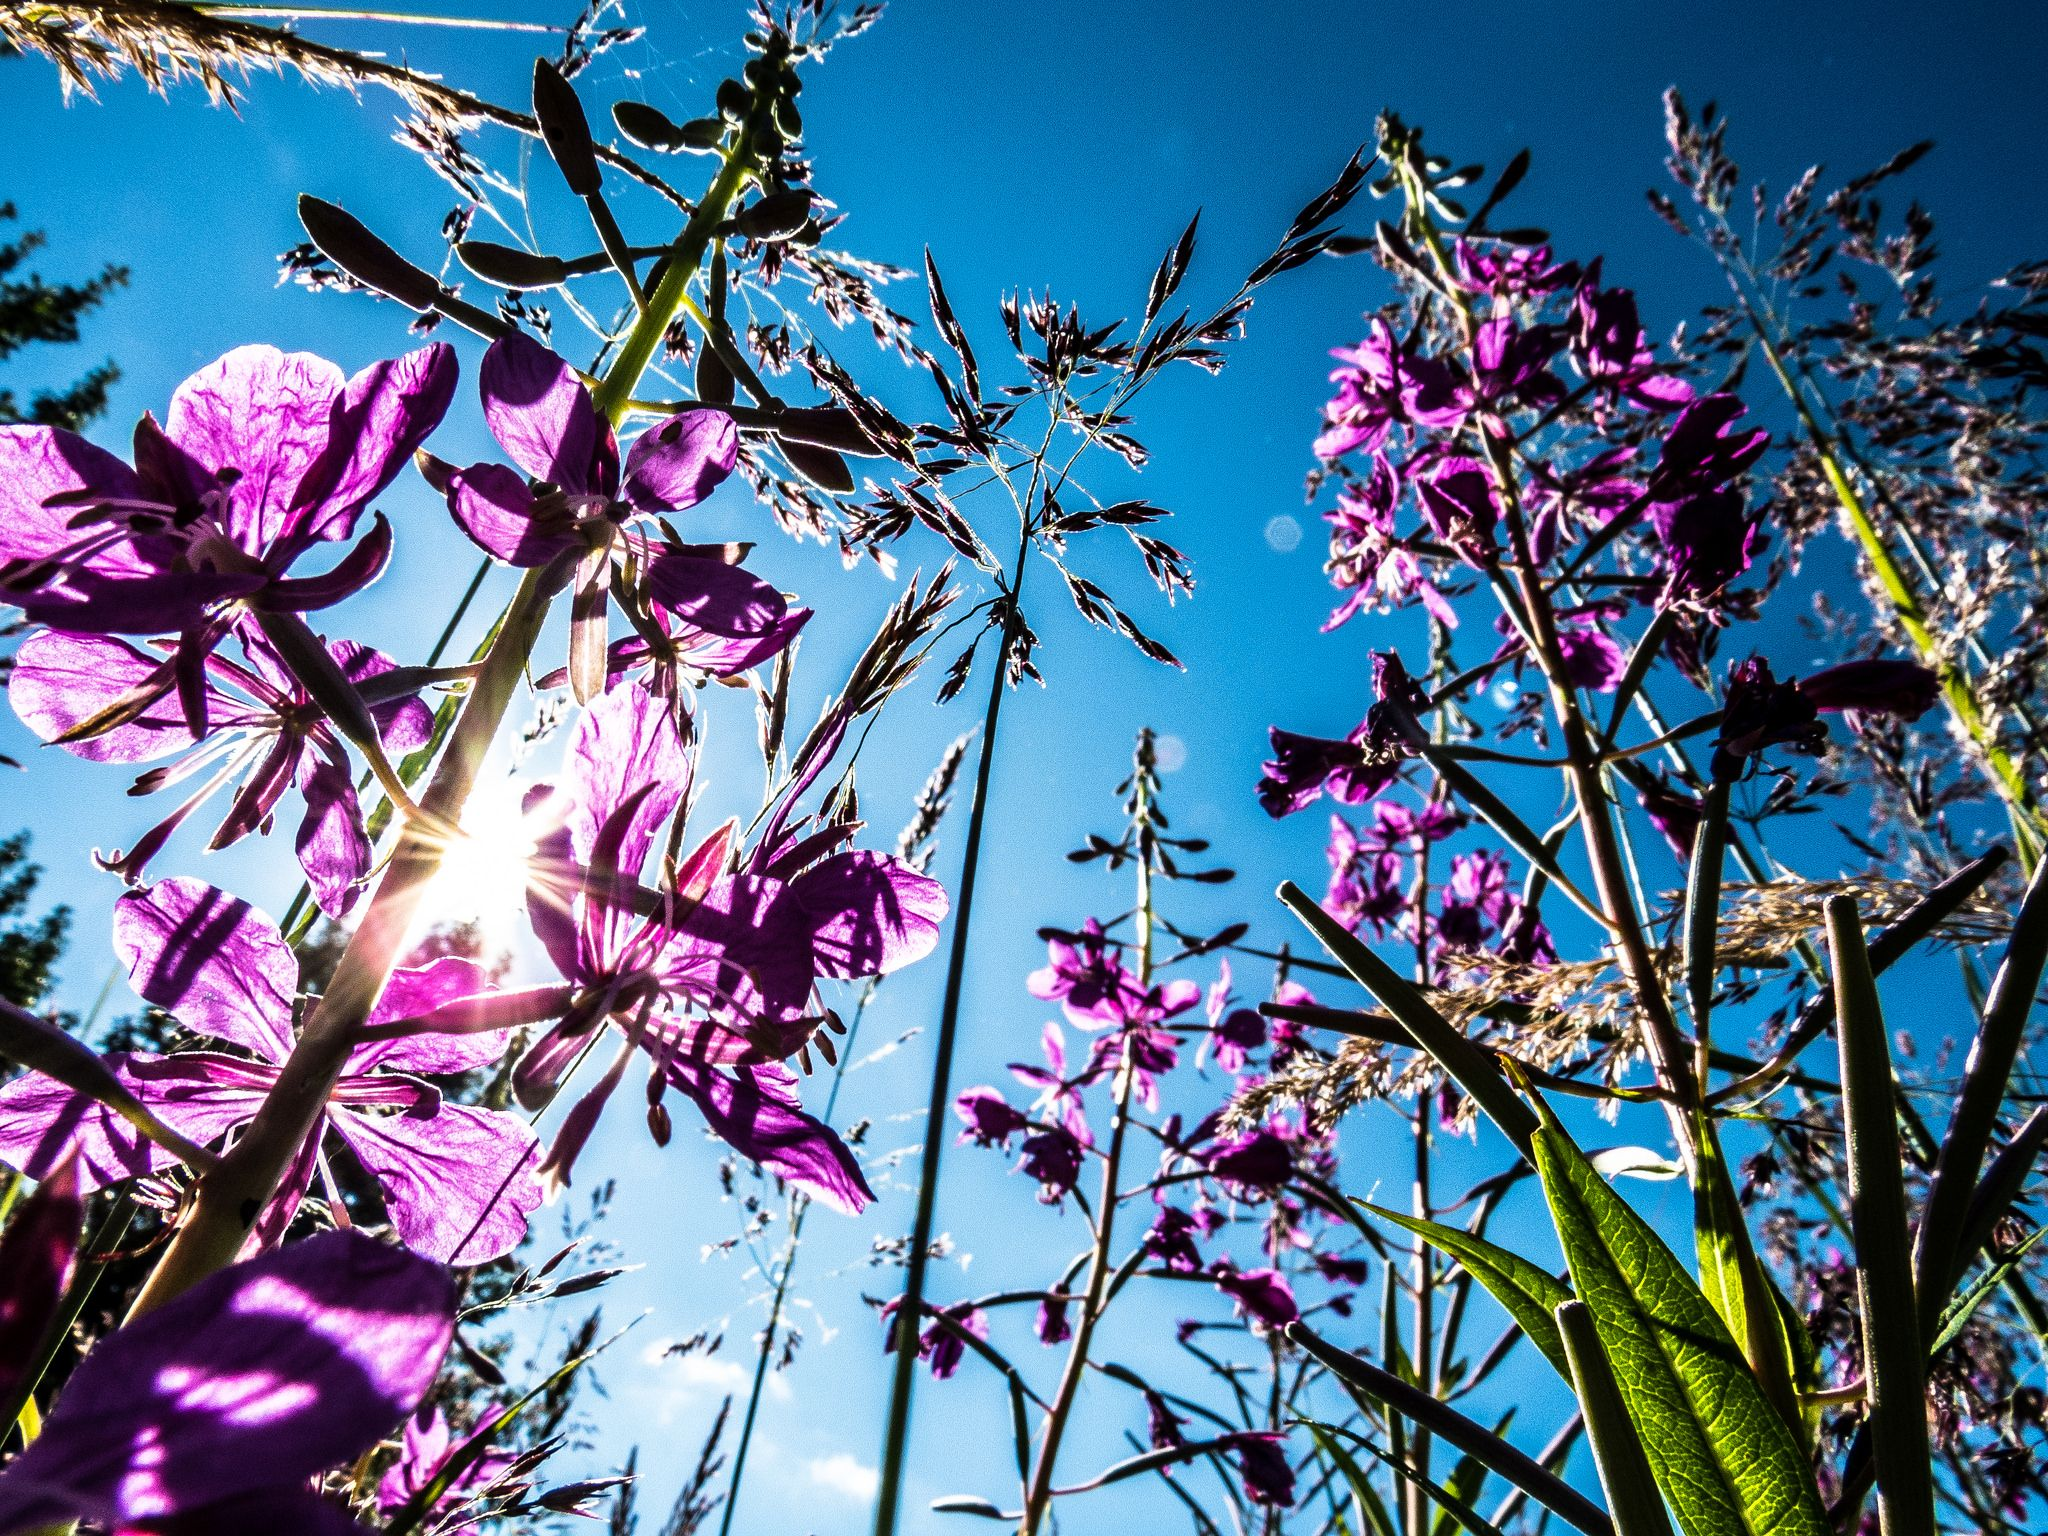 https://flic.kr/p/KEJP5Y | A view through fireweed | Habitat on Kodiak Refuge includes a variety of plant species important for wildlife, including this colorful fireweed (Chamerion angustifolium). Both bears and Sitka black-tailed deer browse Kodiak's abundant fireweed meadows.  Photo: Joshua Blouin/USFWS